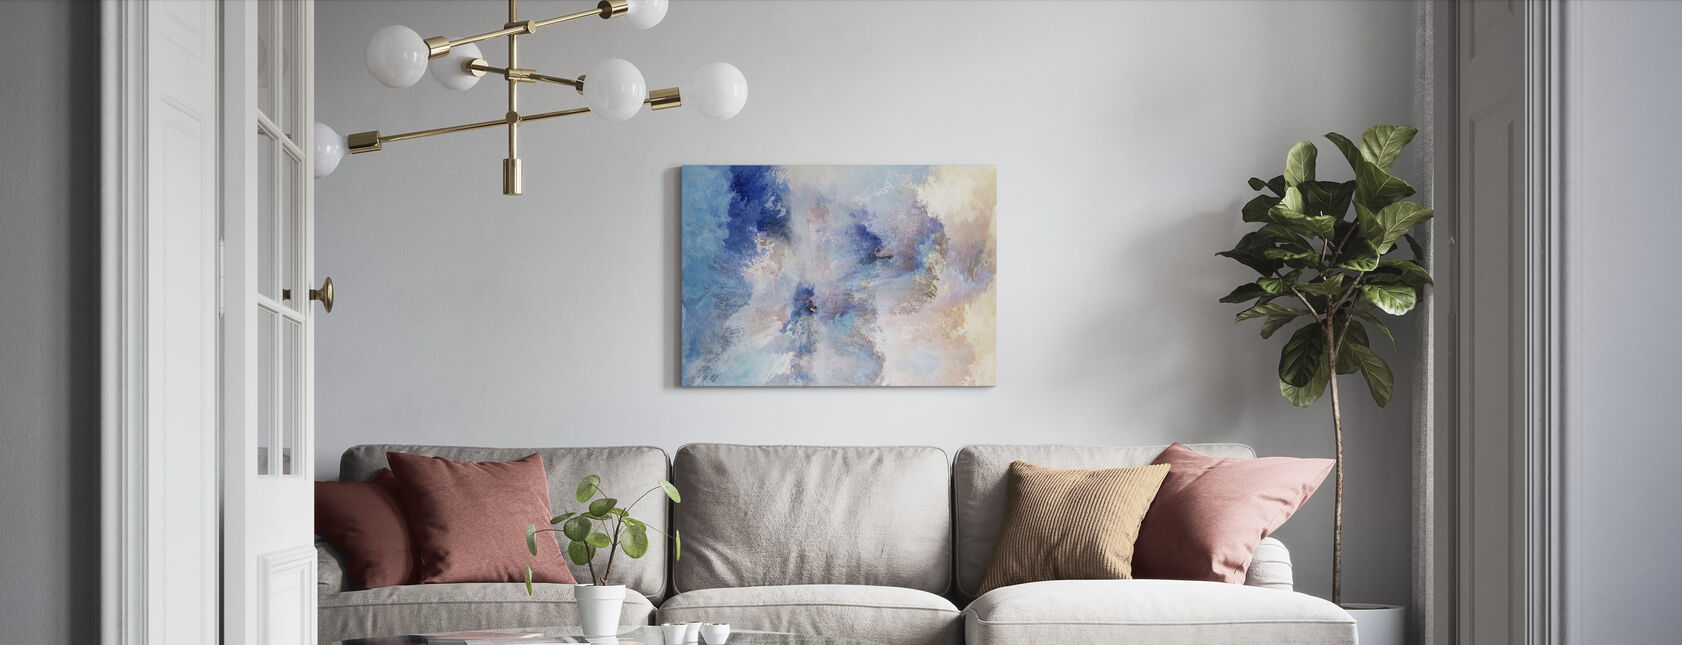 Bliss - Canvas print - Living Room